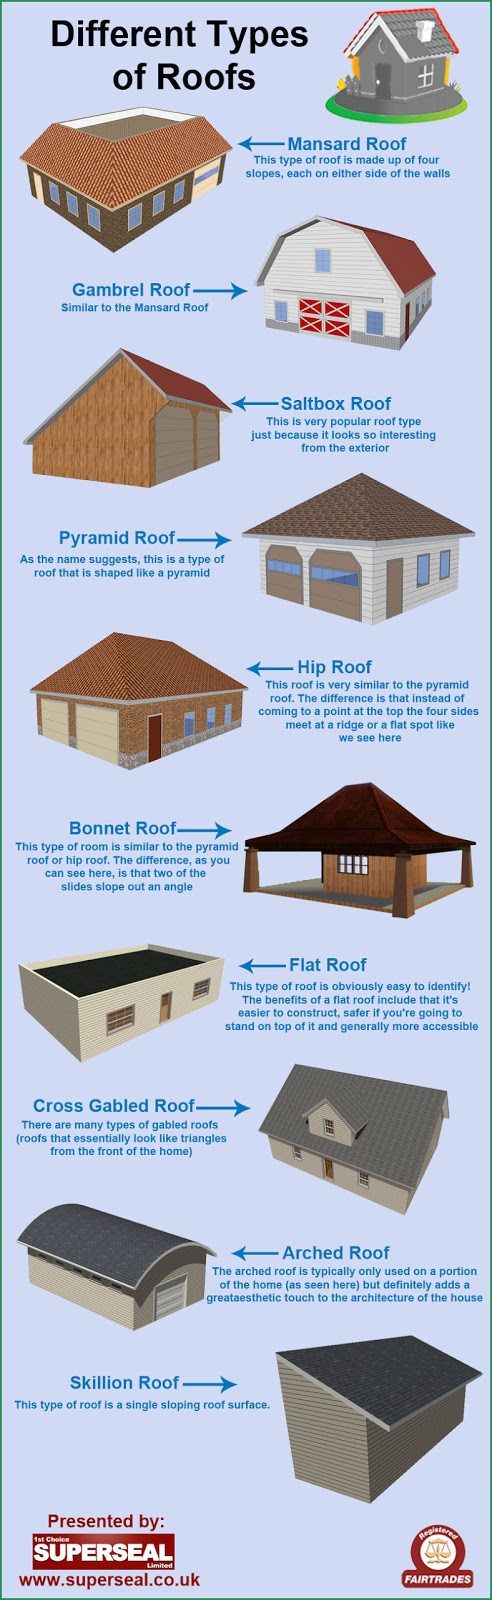 All seasons roofing in utah different types of roofs Kinds of roofs